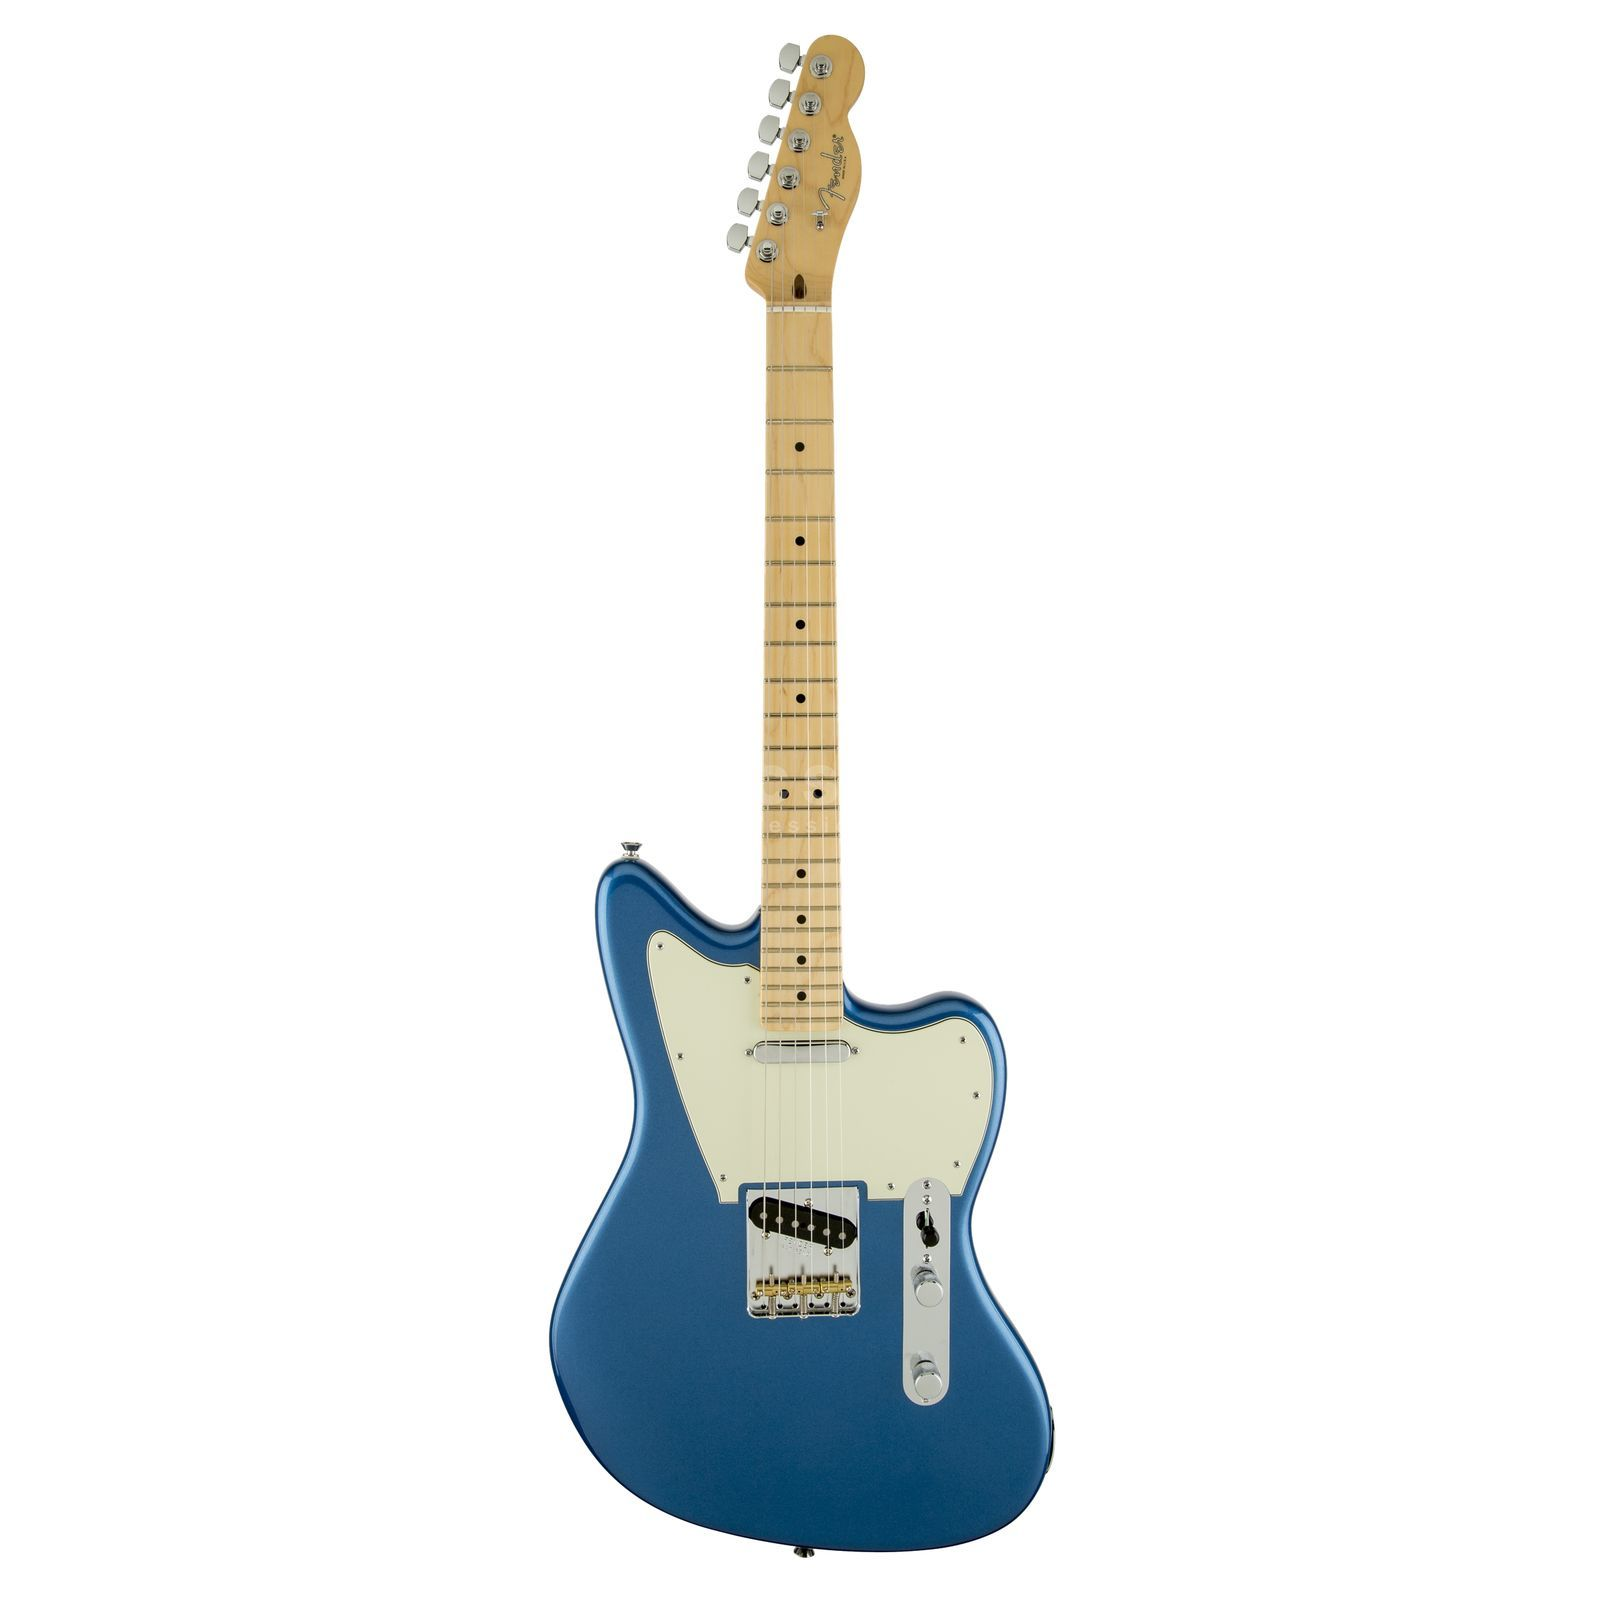 Fender Magnificent 7 Offset Tele MN Lake Placid Blue Produktbild